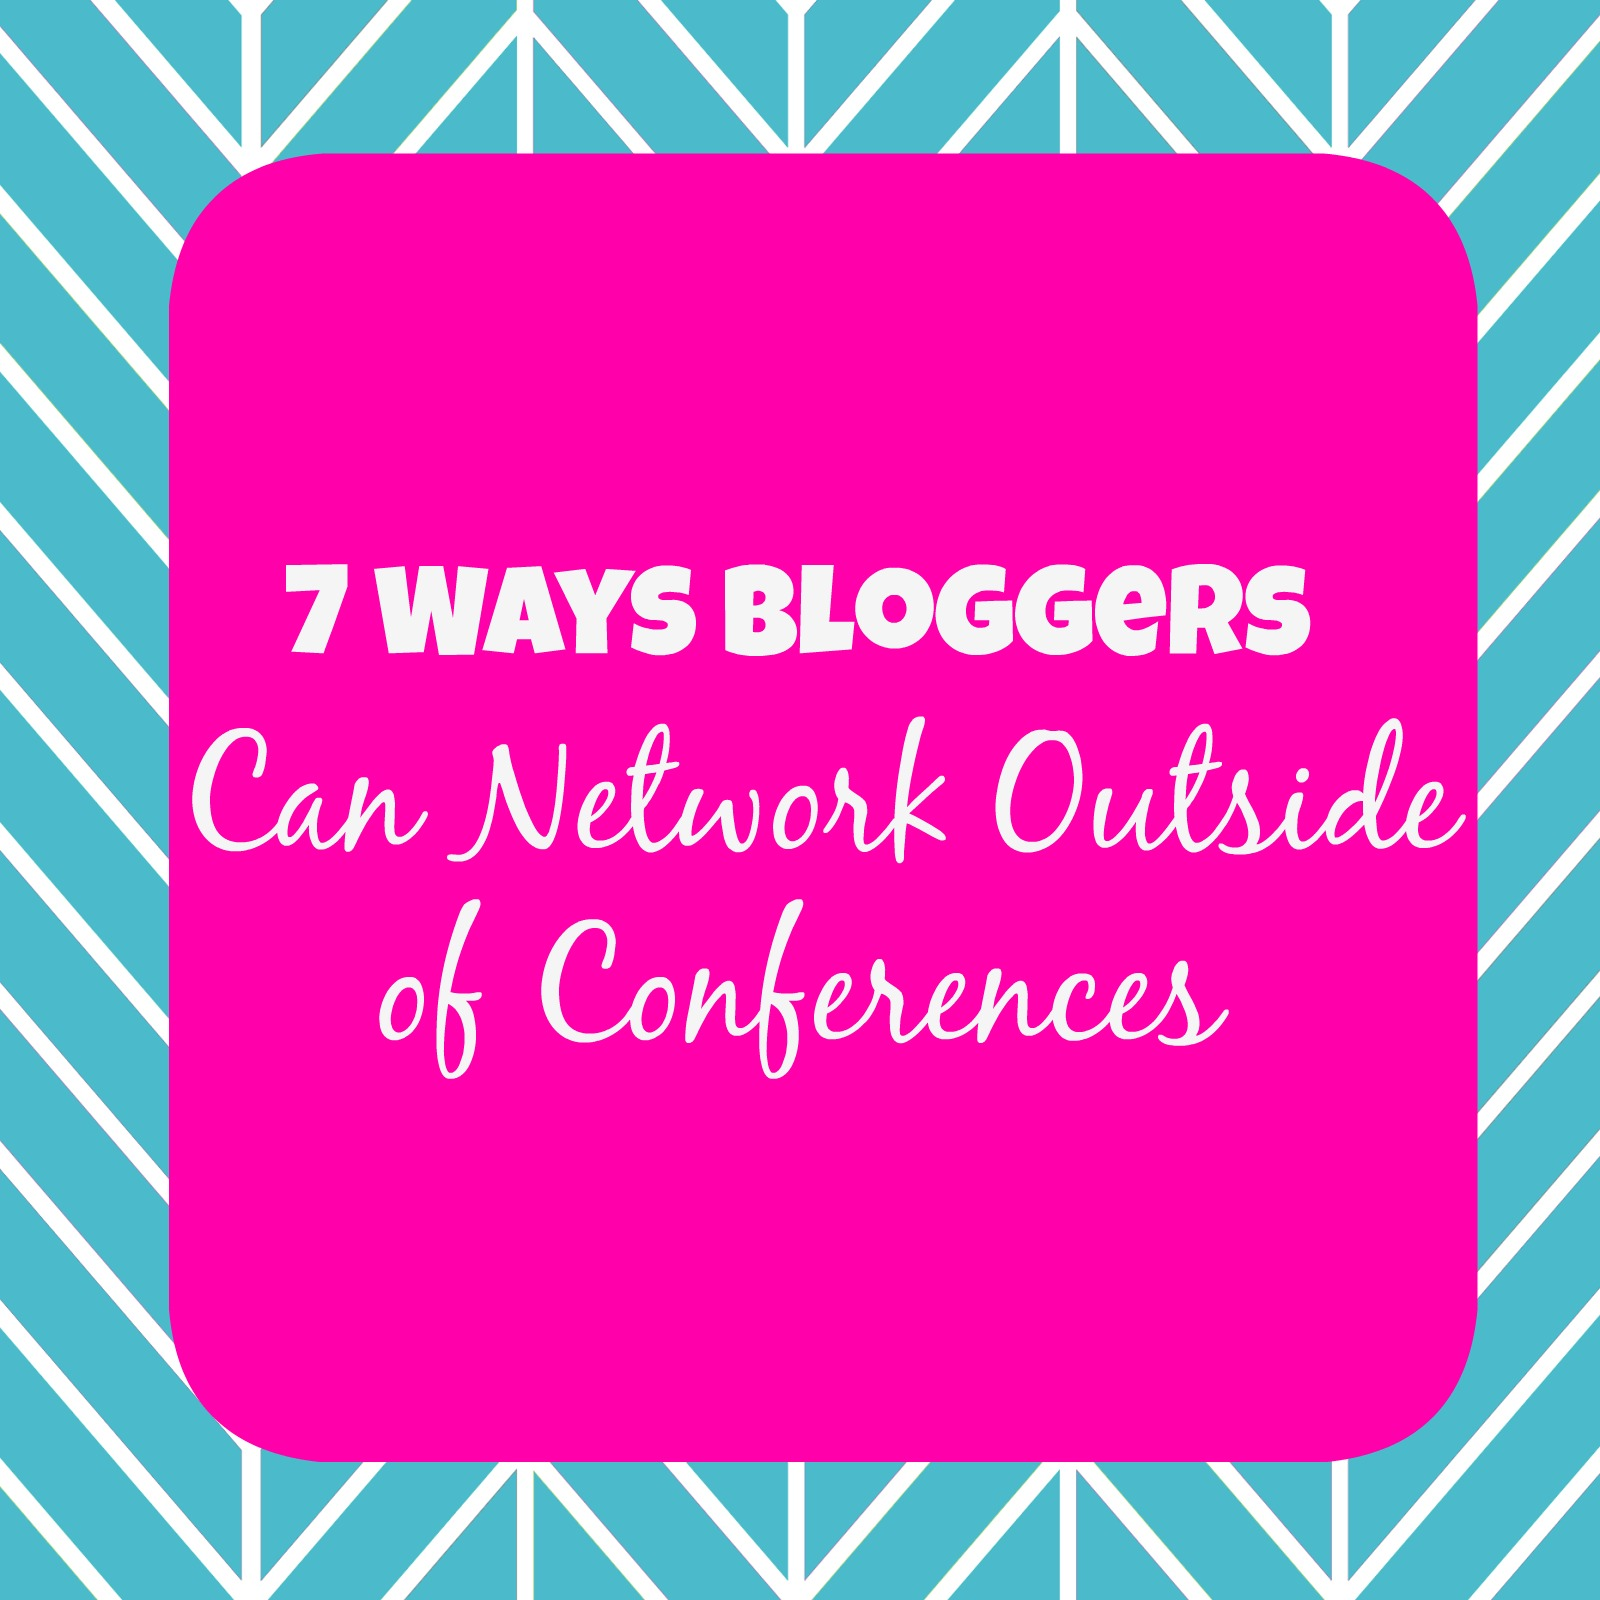 blogger networking tips